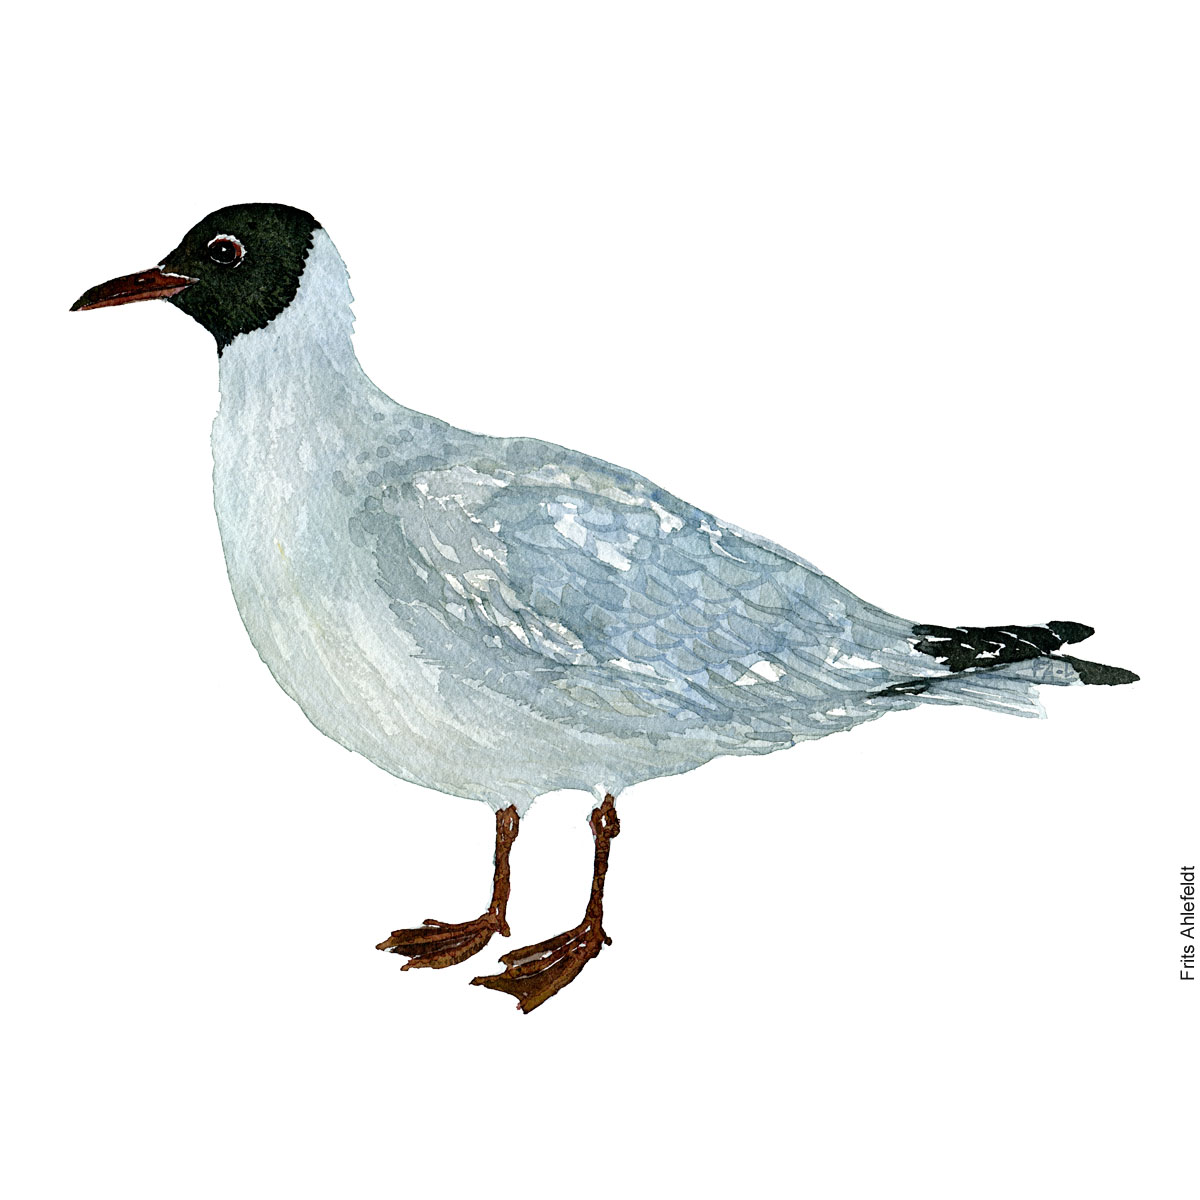 Black necked gull. Bird watercolor illustration handmade by Frits Ahlefeldt